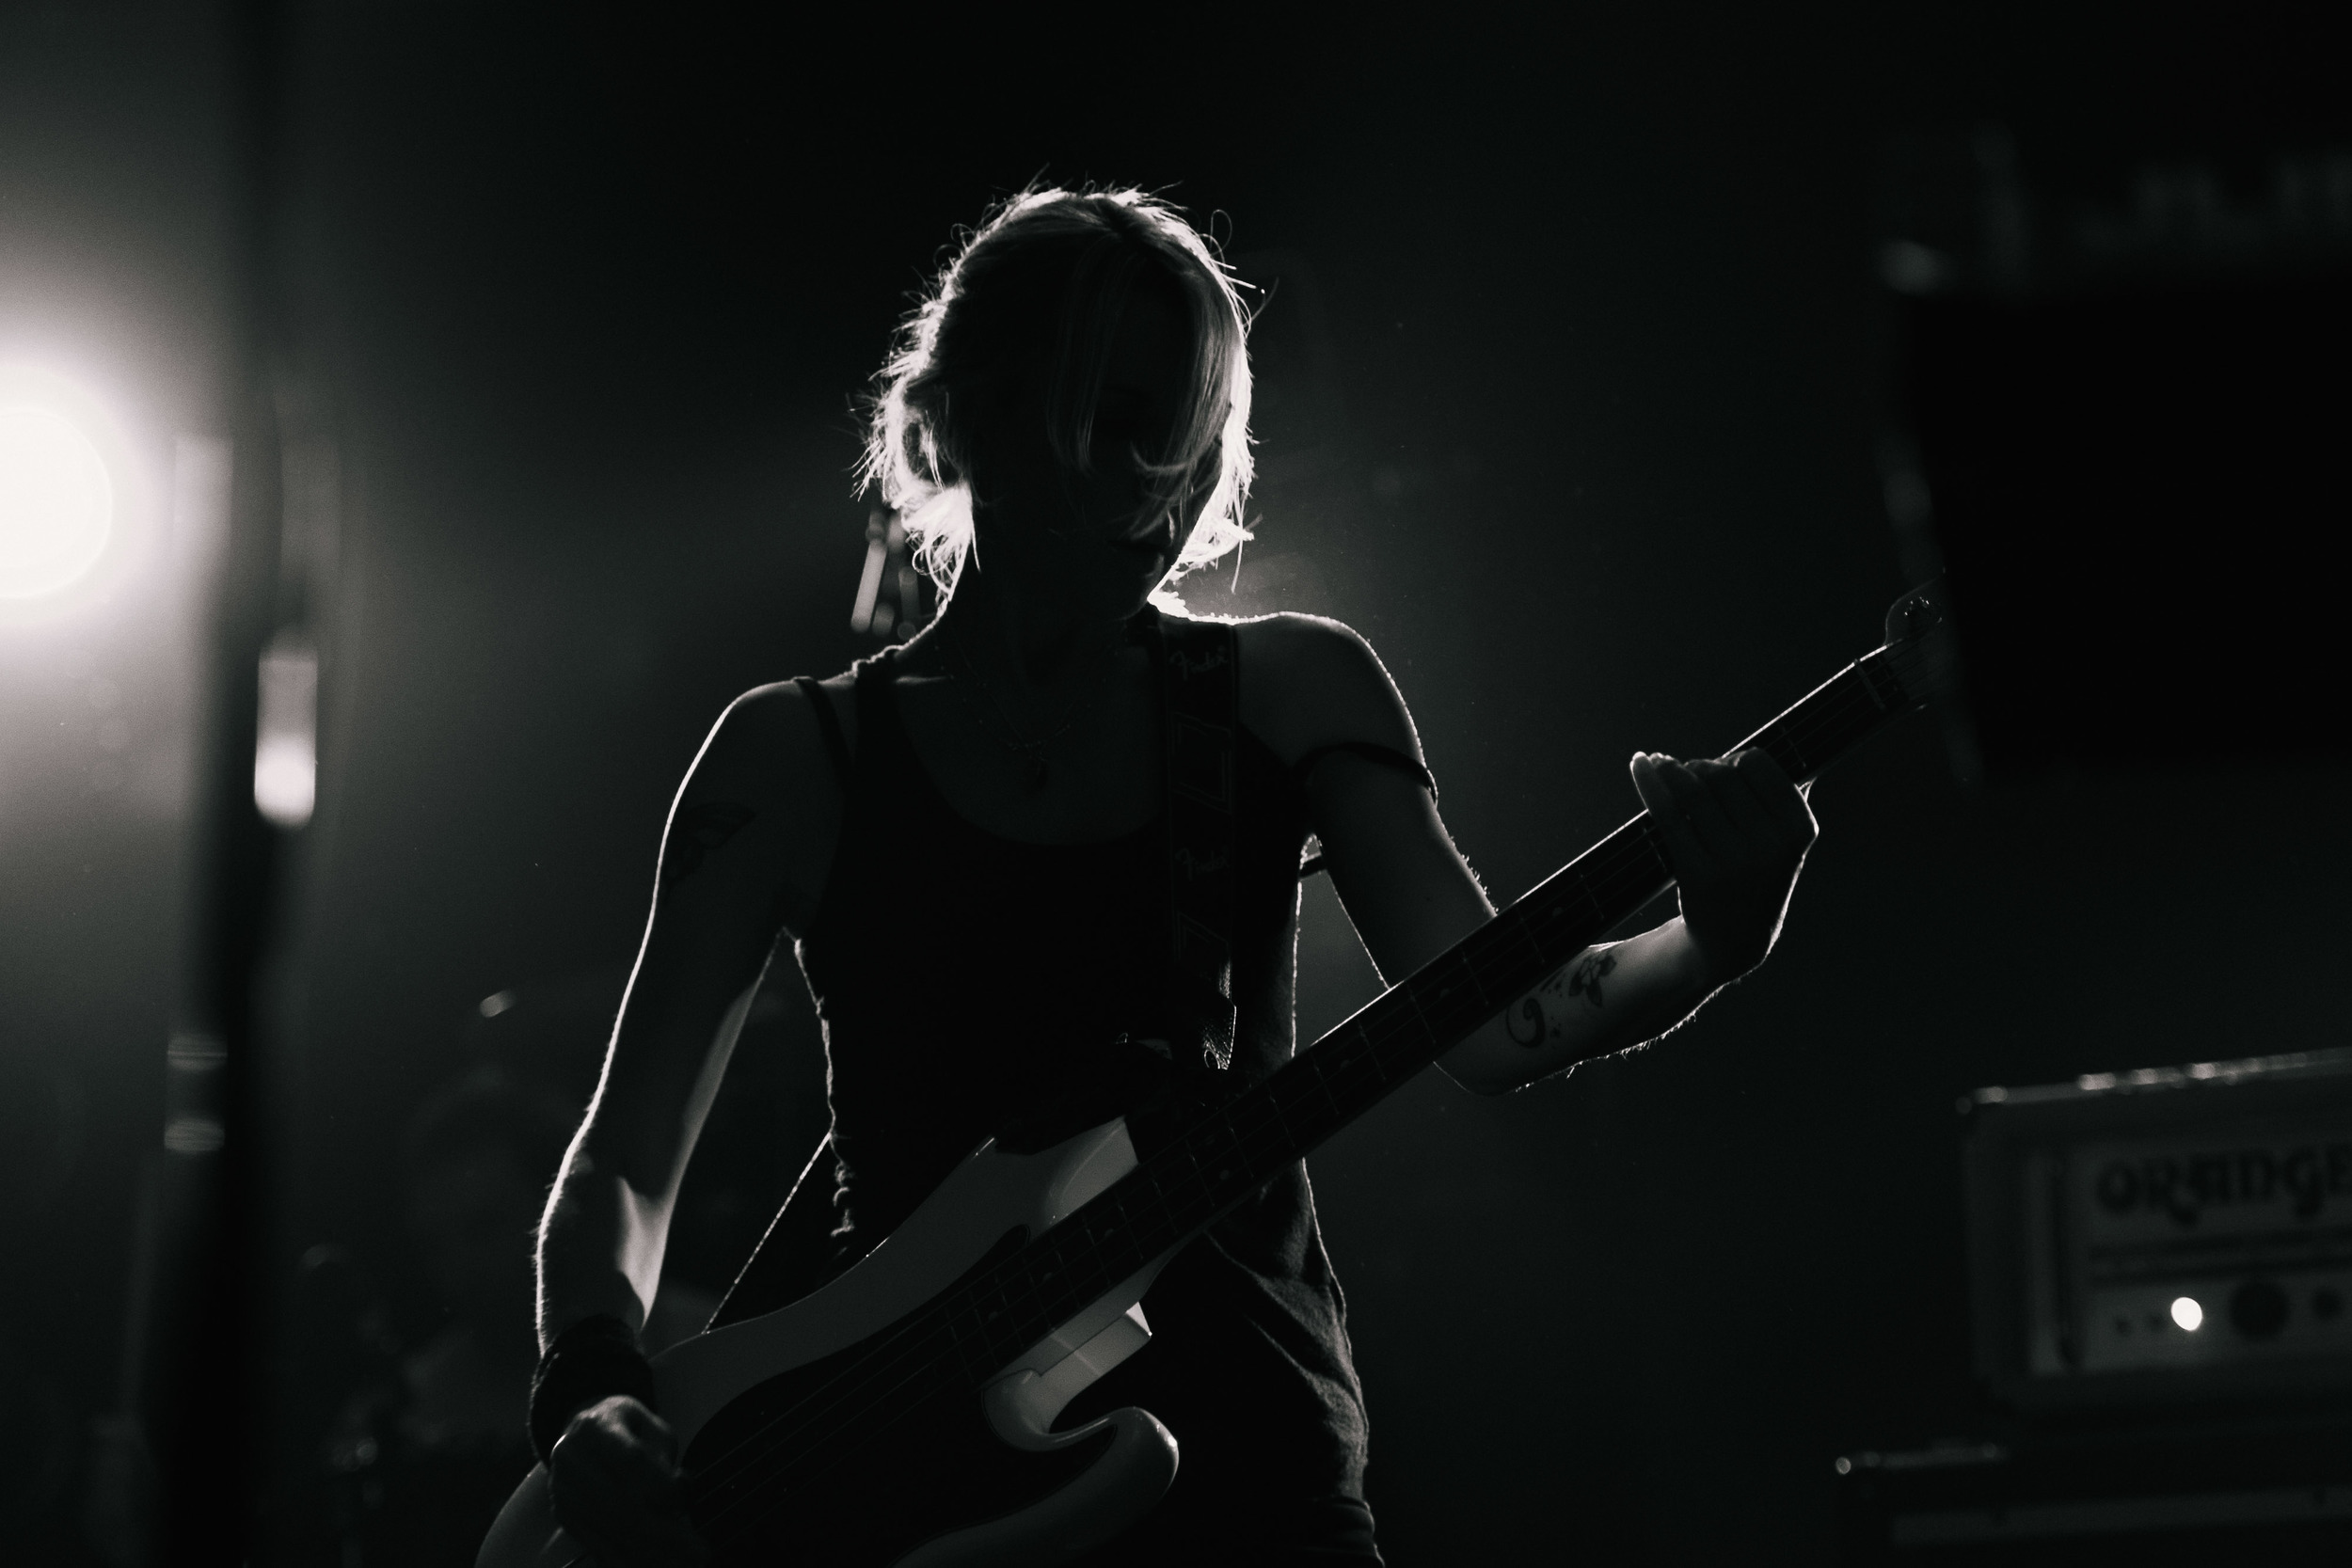 Future Of The Left at The Electric Ballroom - silhouette of Julia Ruzicka